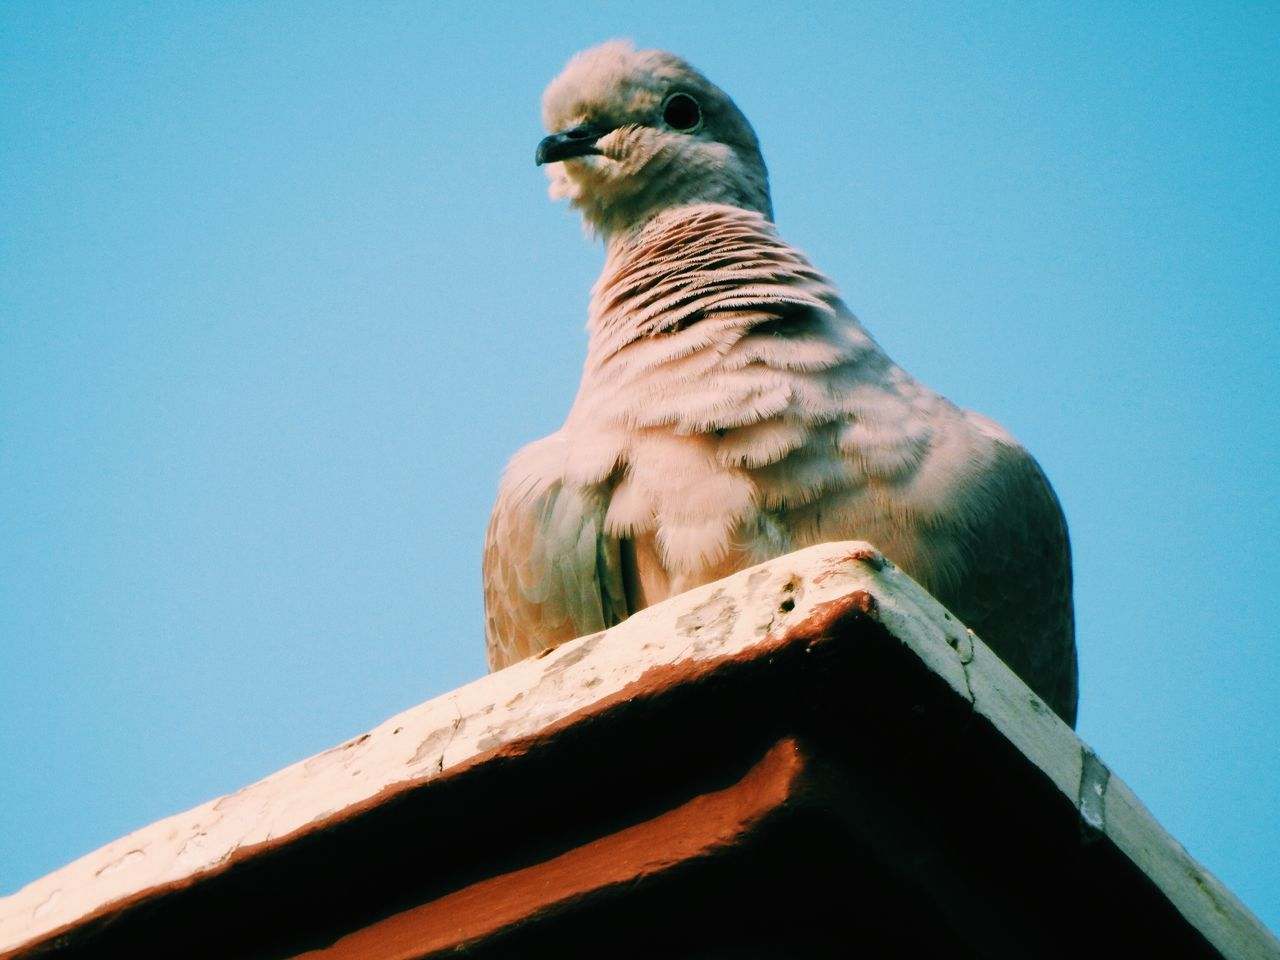 Low Angle View Of Pigeon Perching On Roof Against Clear Blue Sky